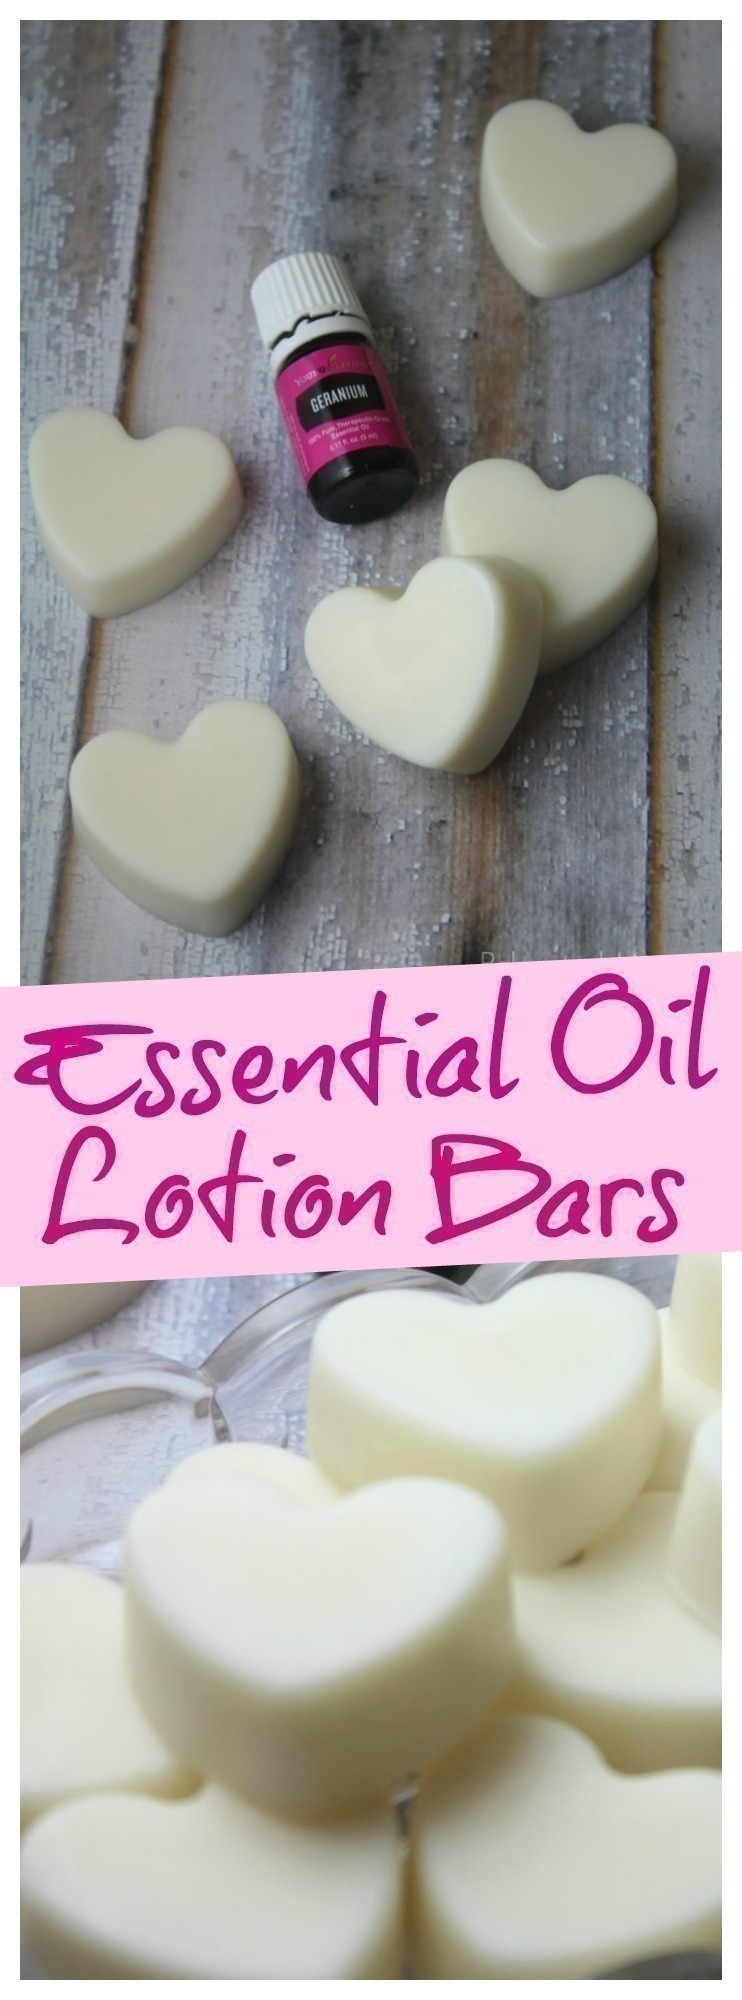 Quick and easy all-natural lotion bars that are perfect to gift and easy to make with organic, unrefined oils and butters. #lotionbars #essentialoil #homemade #DIY #lotion #bars #gift #giftsforher #mothersday #ValentinesDay